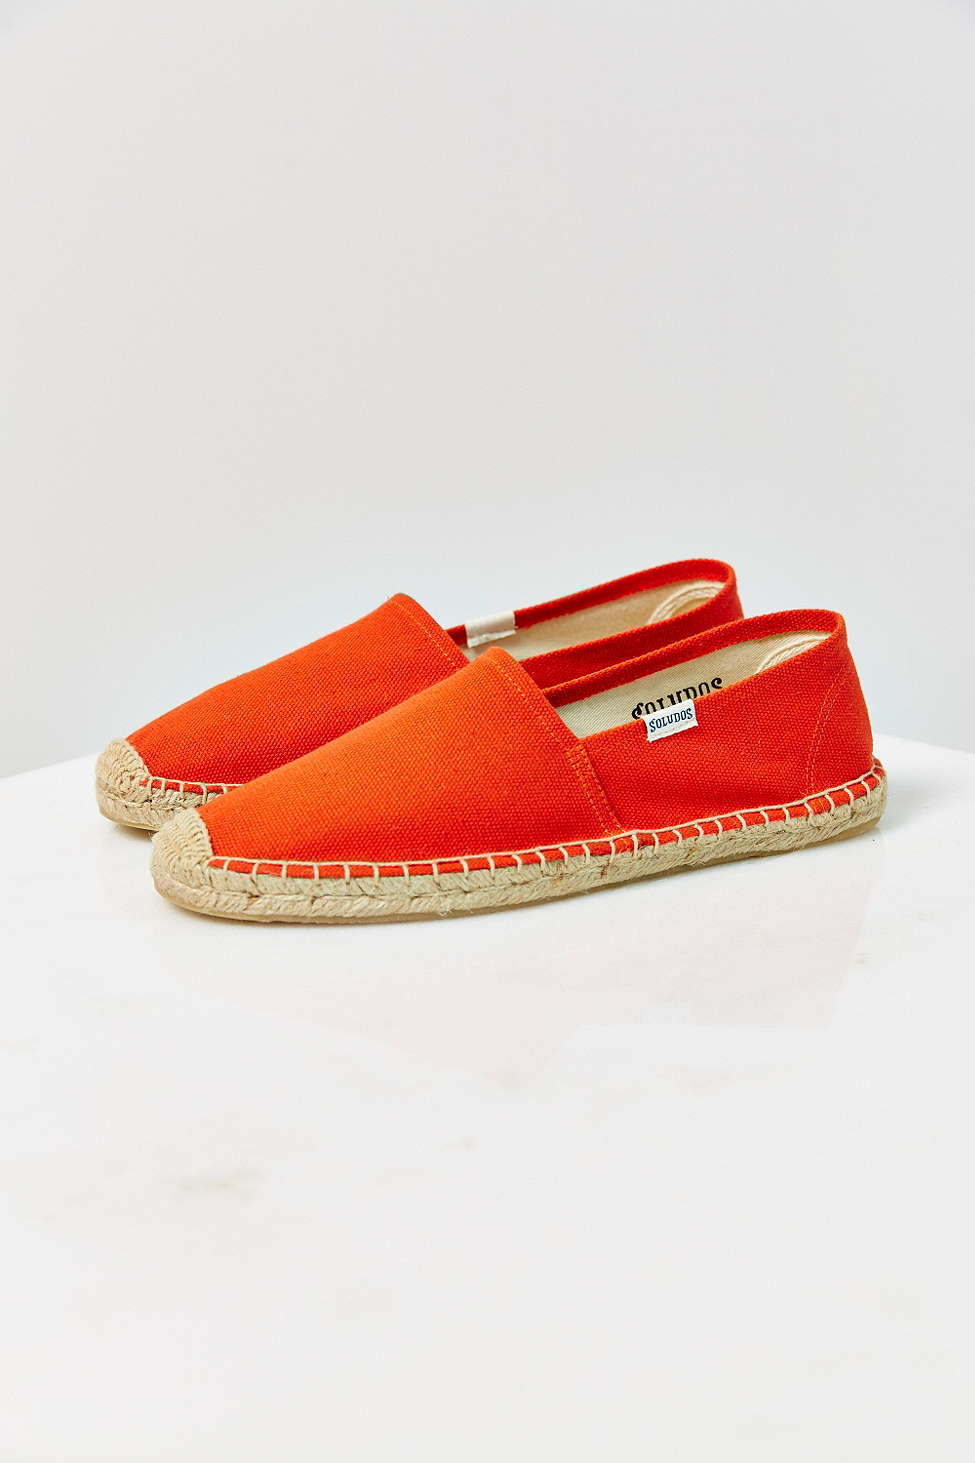 bcbed03988f2 Lyst - Soludos Dali Espadrille Slip-on Shoe in Red